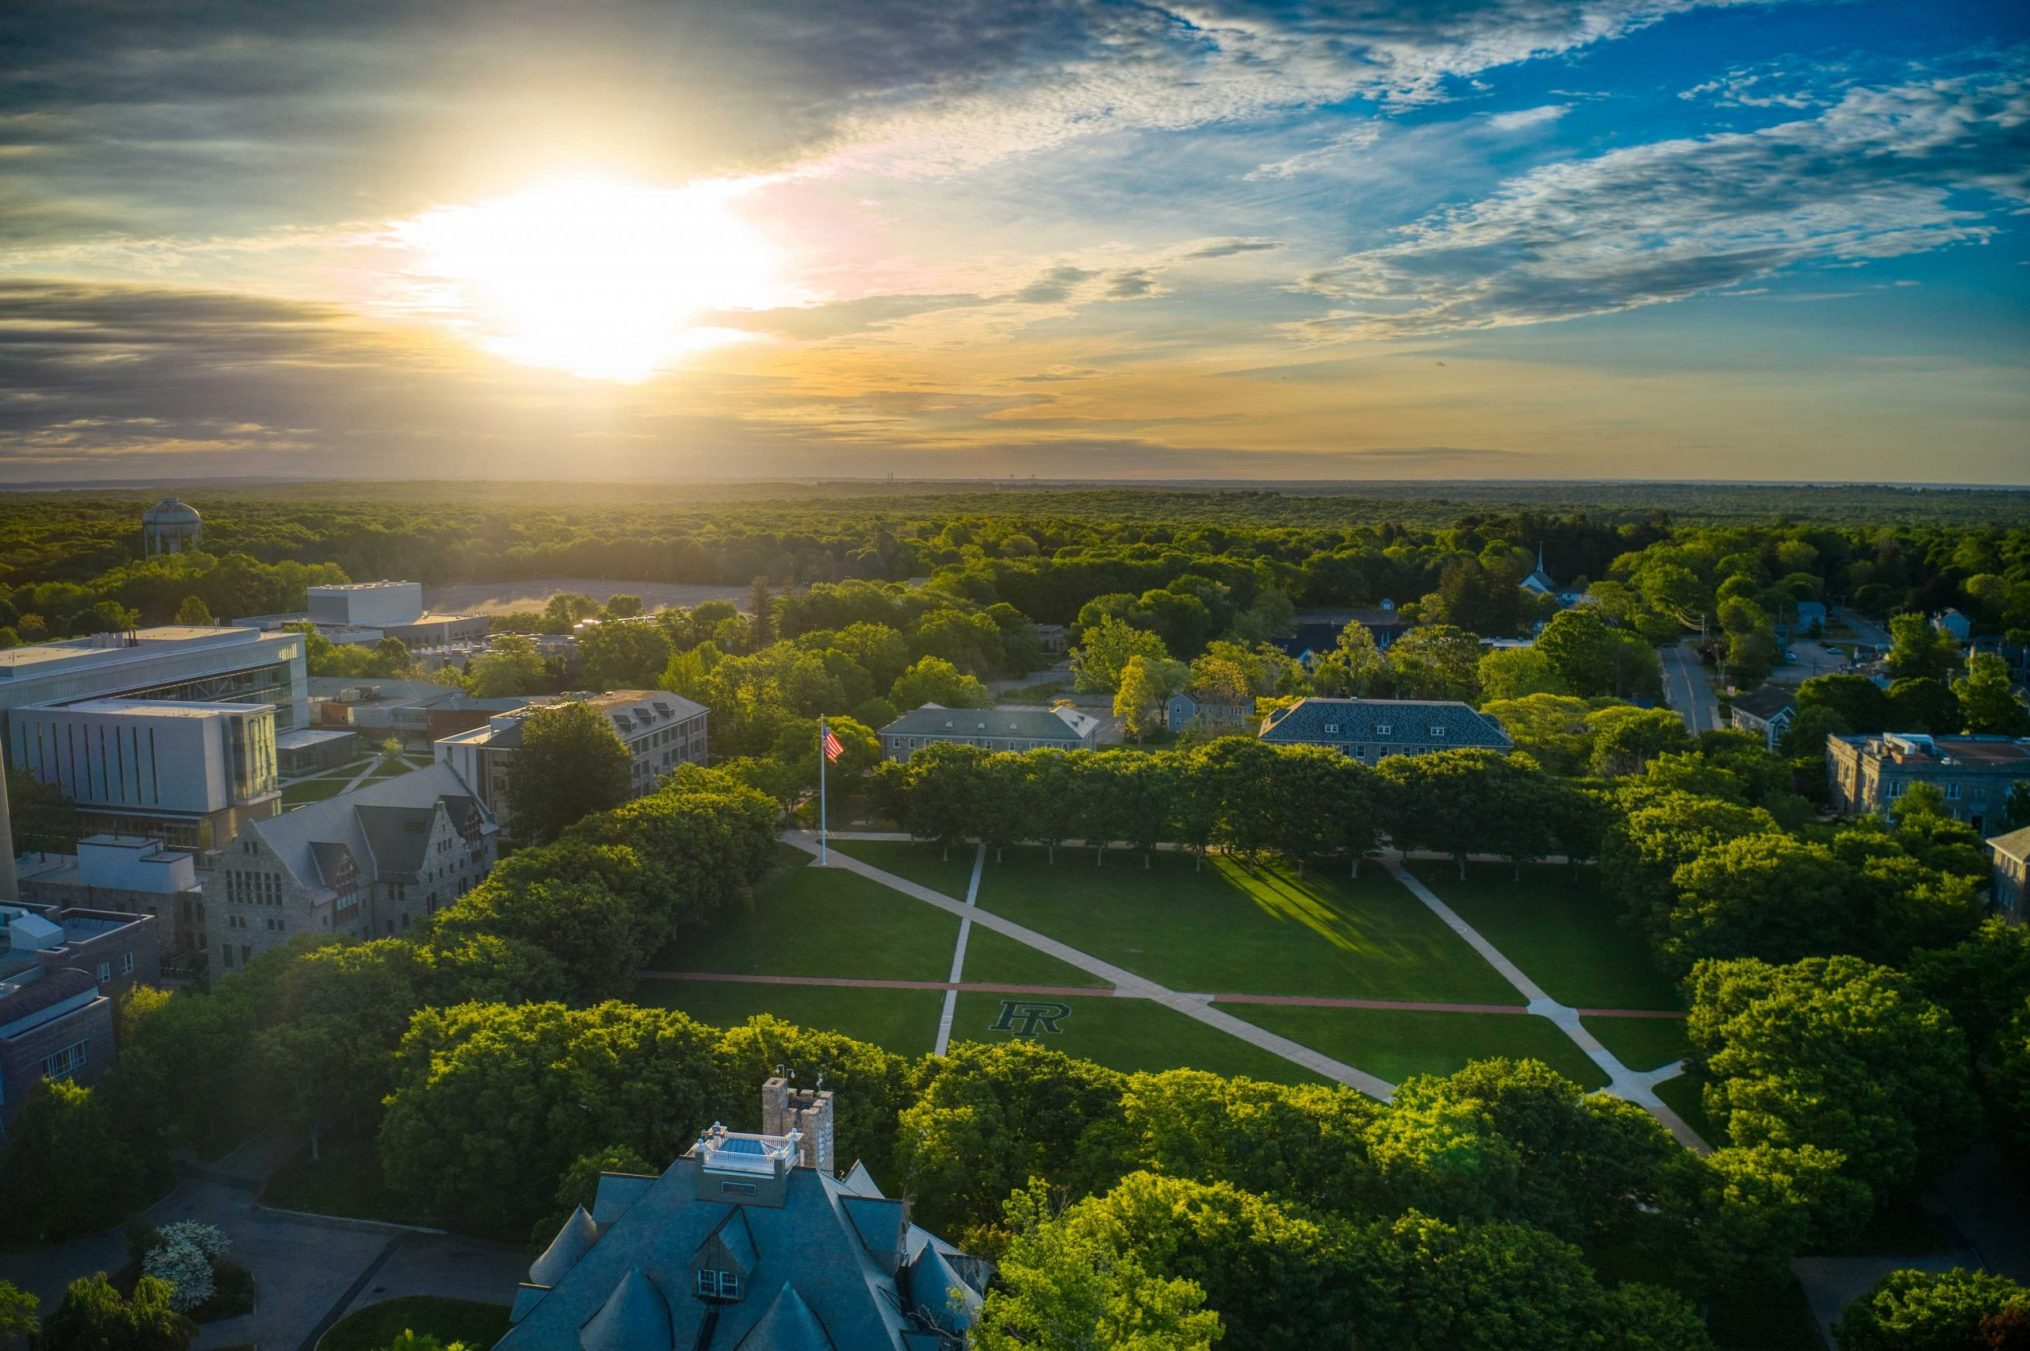 URI's campus from an aerial perspective at sunset.